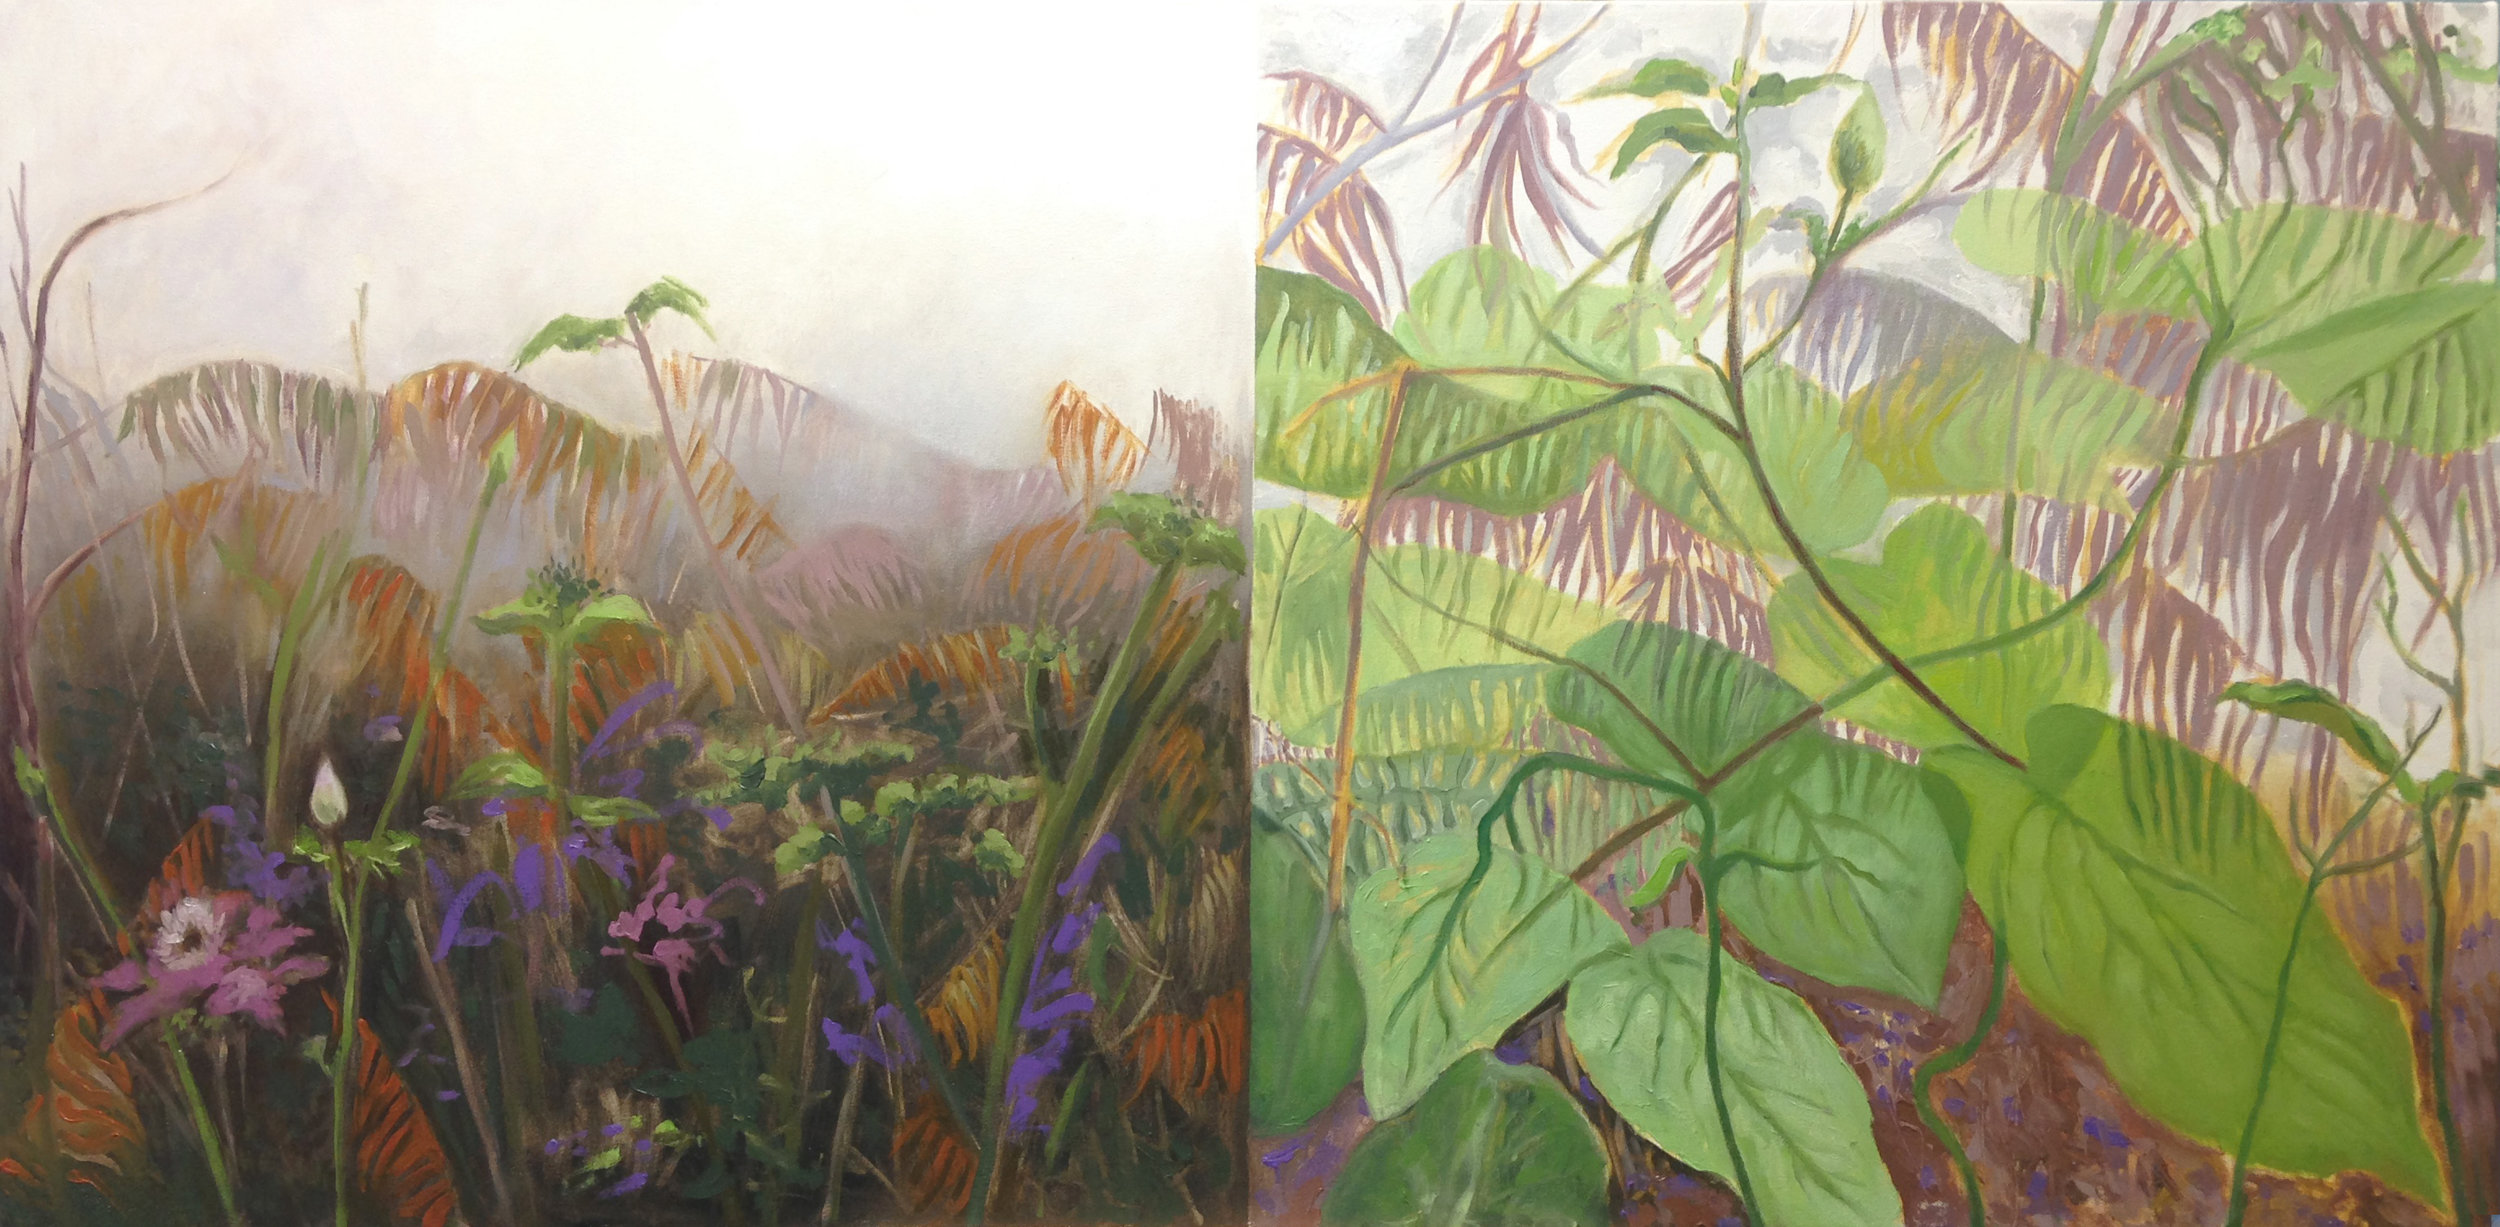 Garden Series #3,  Along the Canal , 2018, oil on canvas, 30 x 60 inches (one canvas), Collection: Aramark, Philadelphia